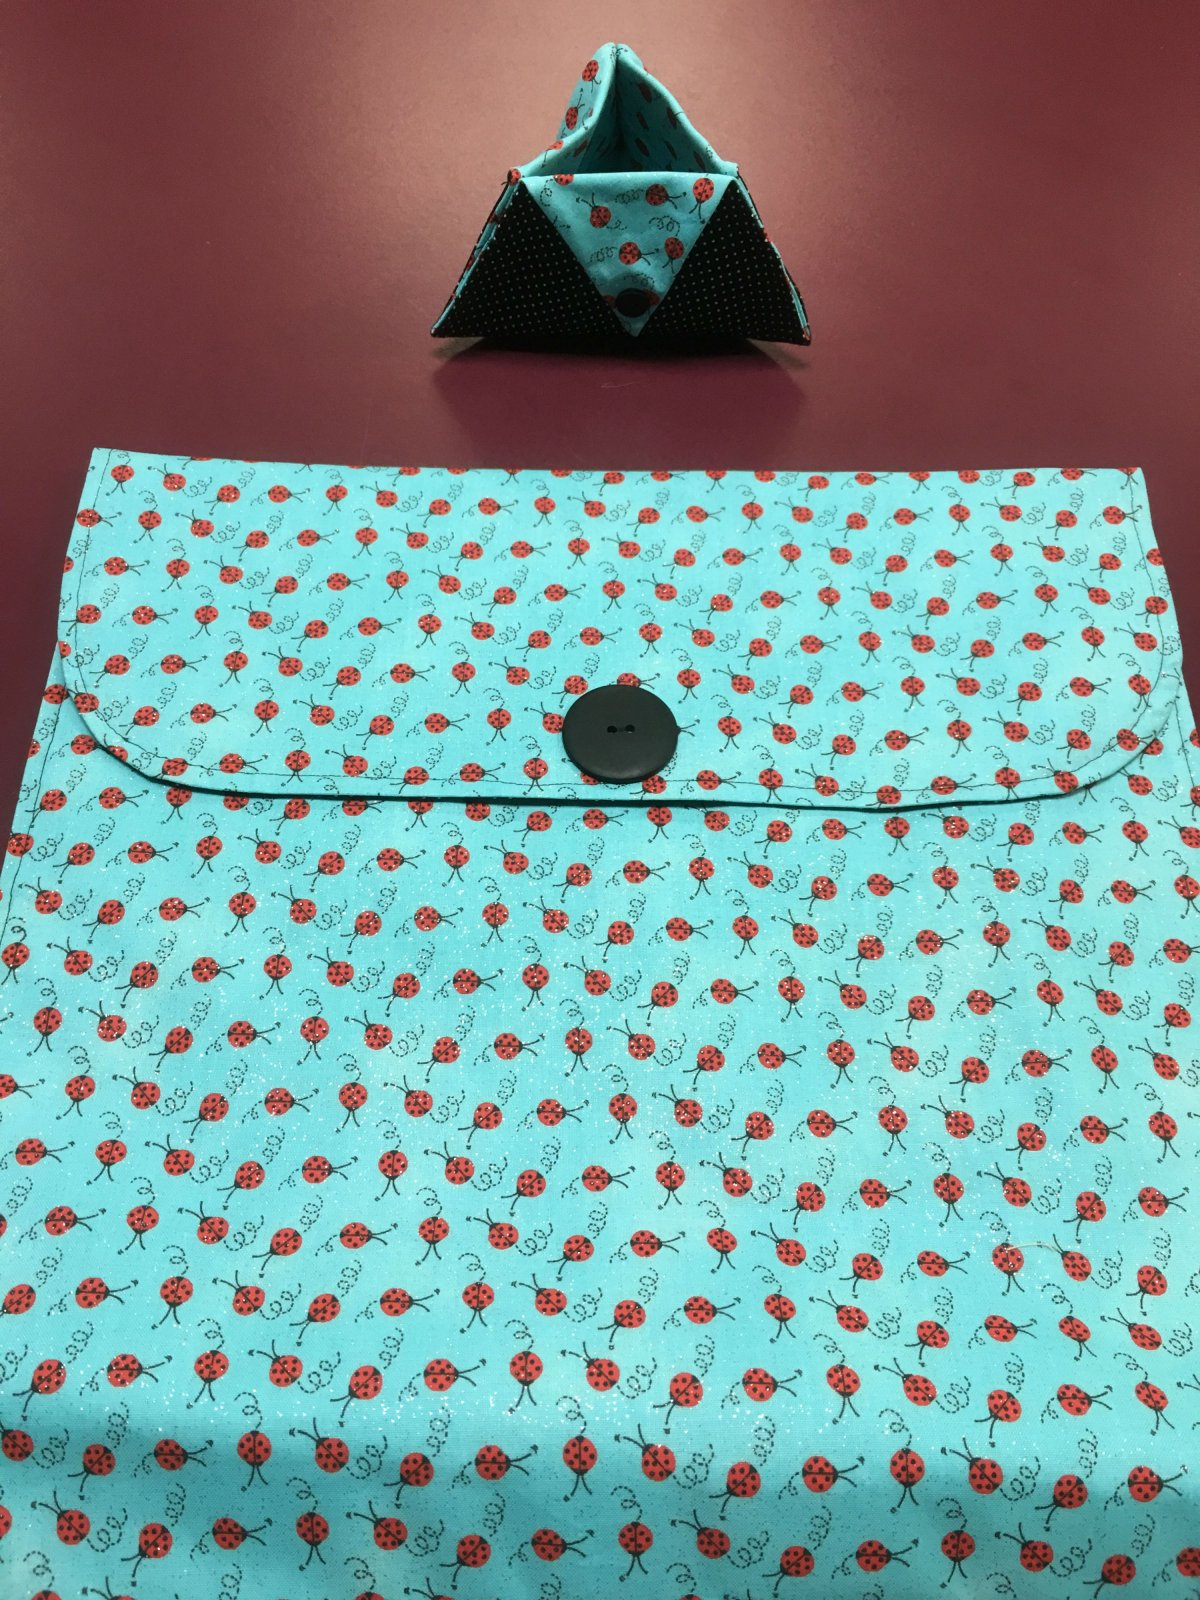 Project bag and ort bag - Blue with Ladybugs 14 x 13.25